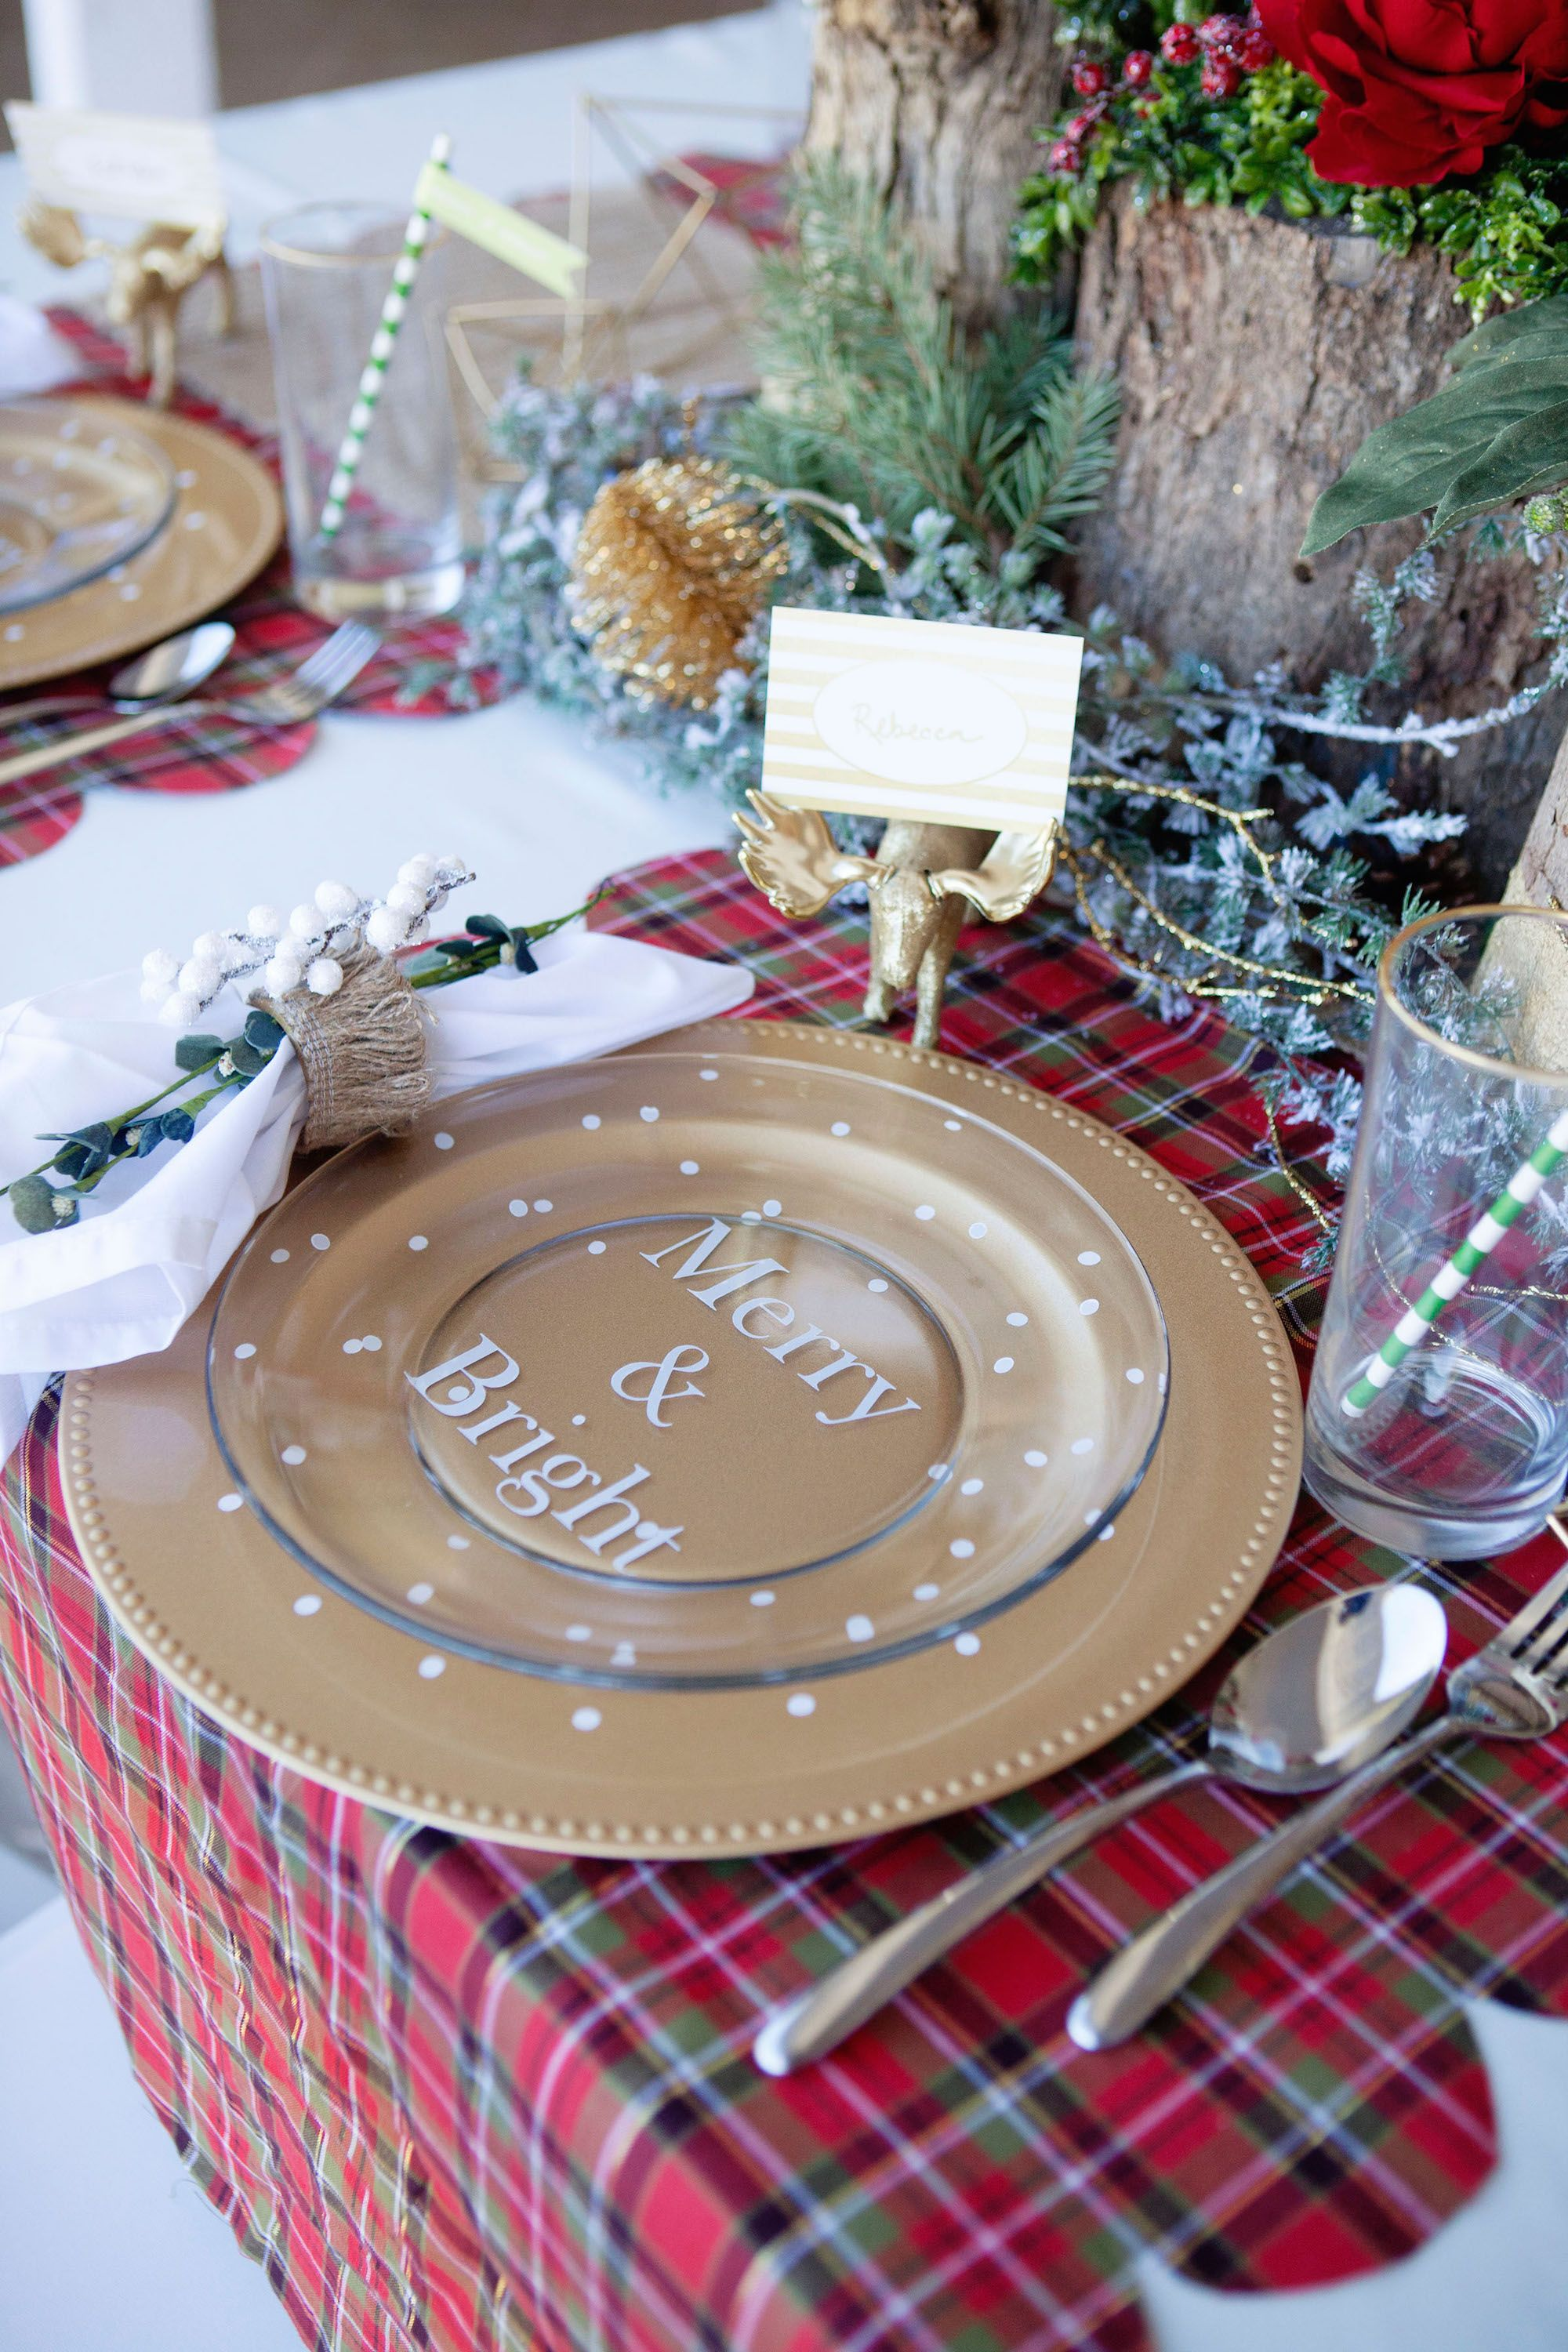 How to dress up a plain Plate and Gold Charger | Christmas place ...